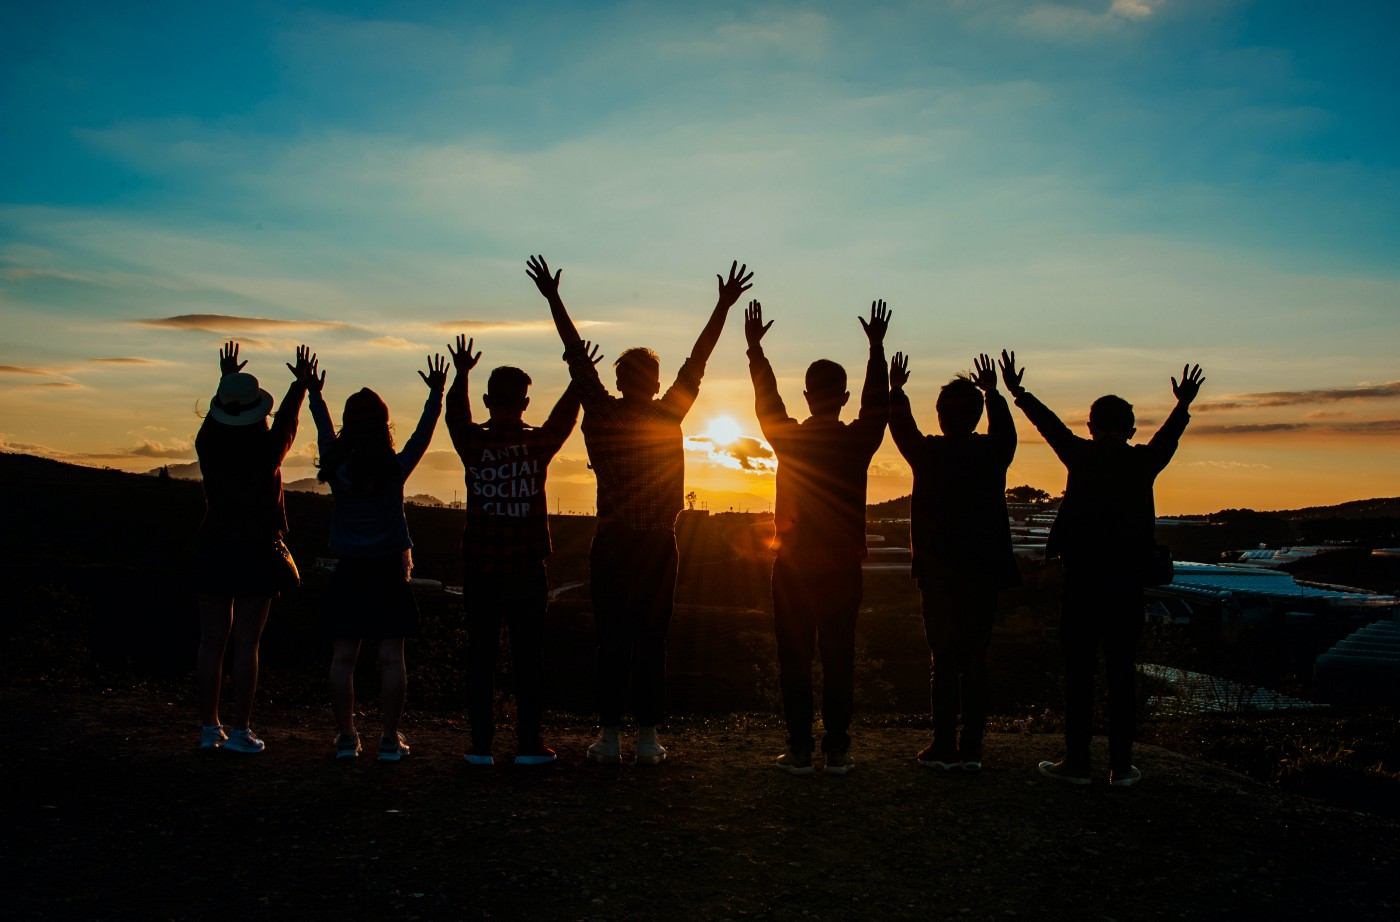 Picture of people with arms raised meeting the rising sun.